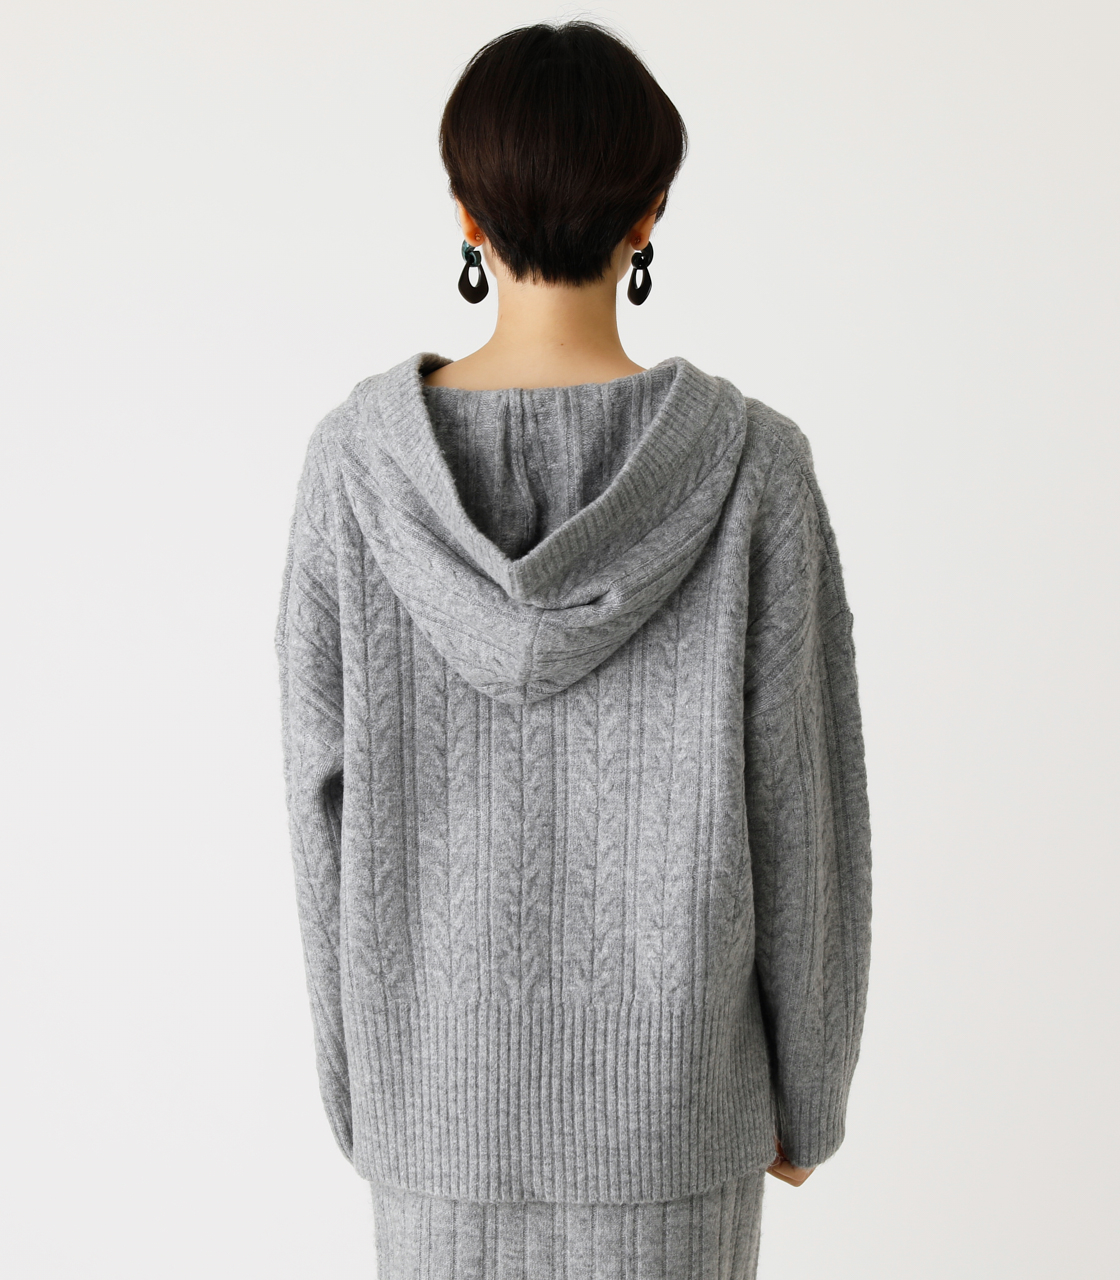 CABLE KNIT HOODIE/ケーブルニットフーディ 詳細画像 T.GRY 6